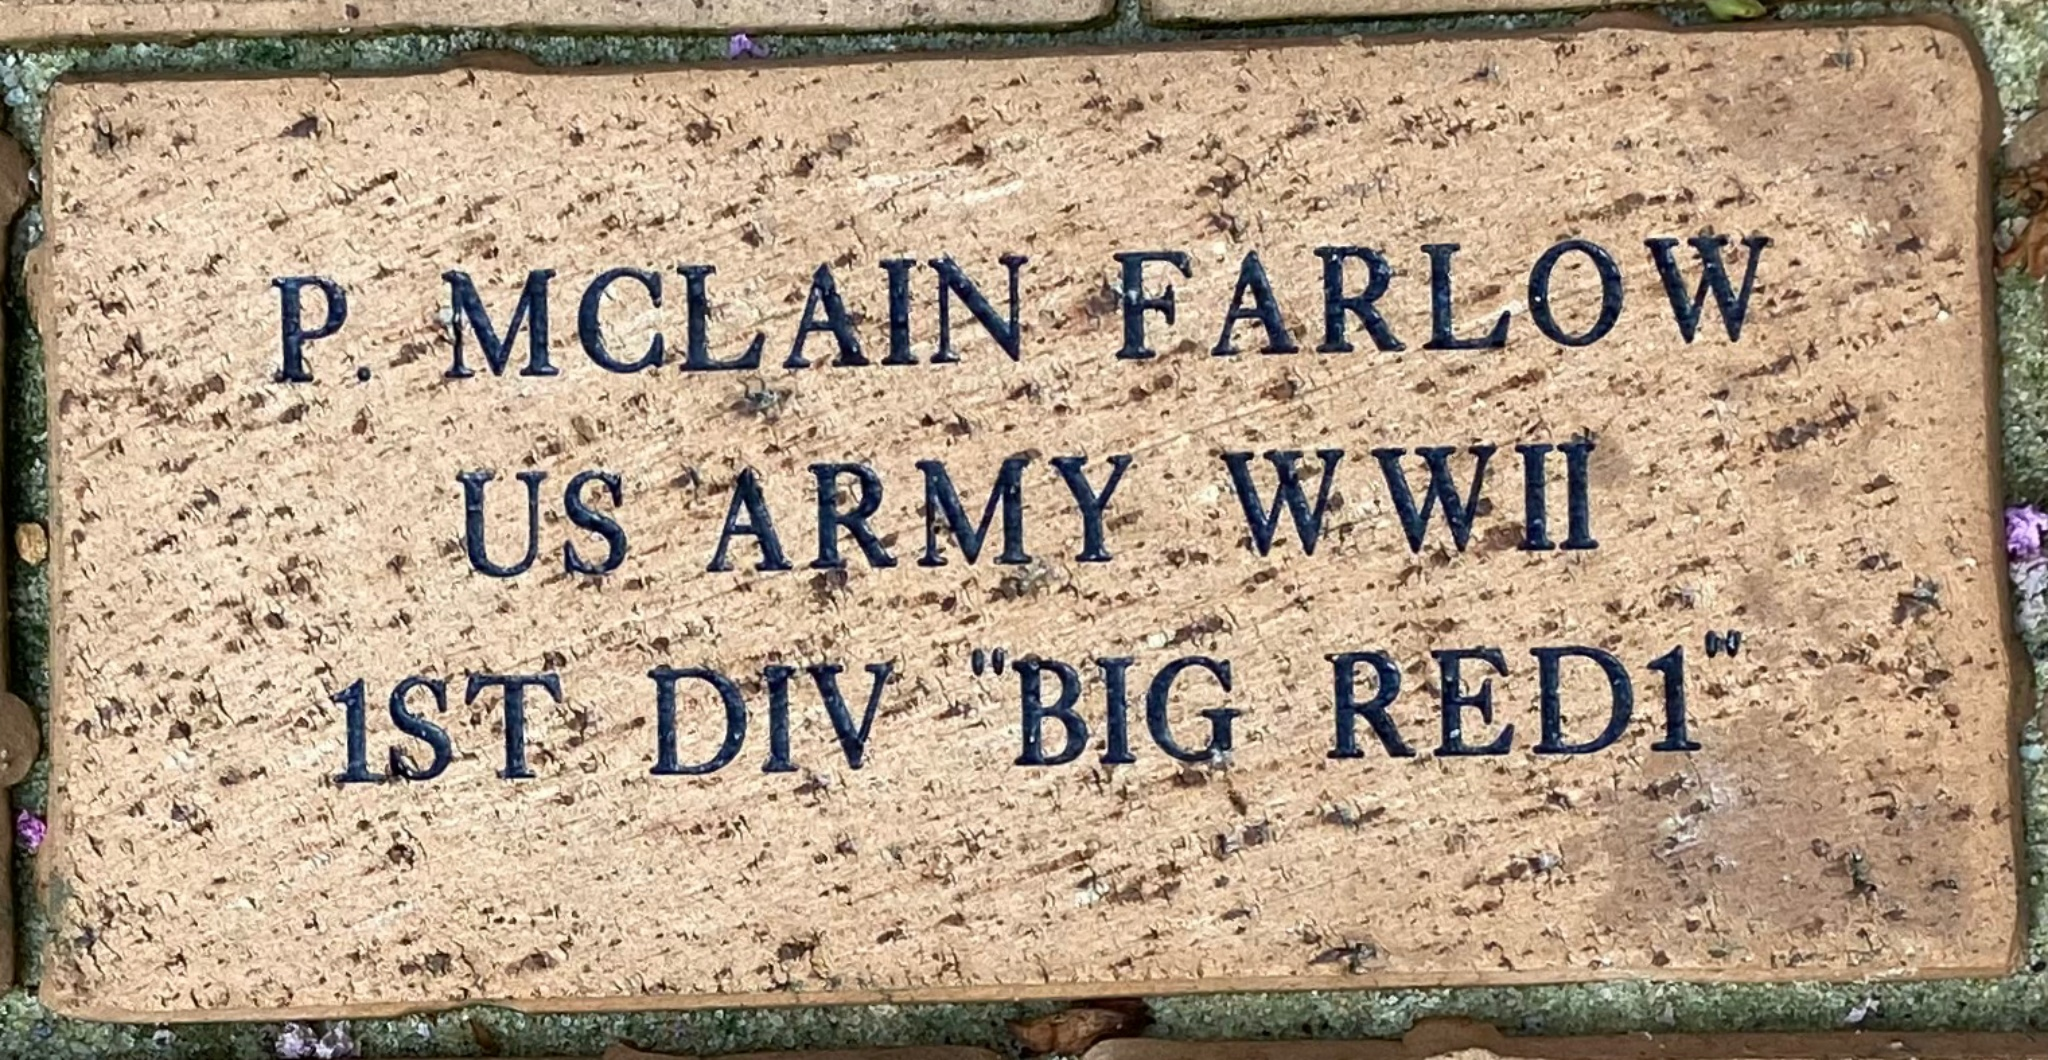 "P.MCLAIN FARLOW US ARMY WWII 1ST DIV """"BIG RED1"""""